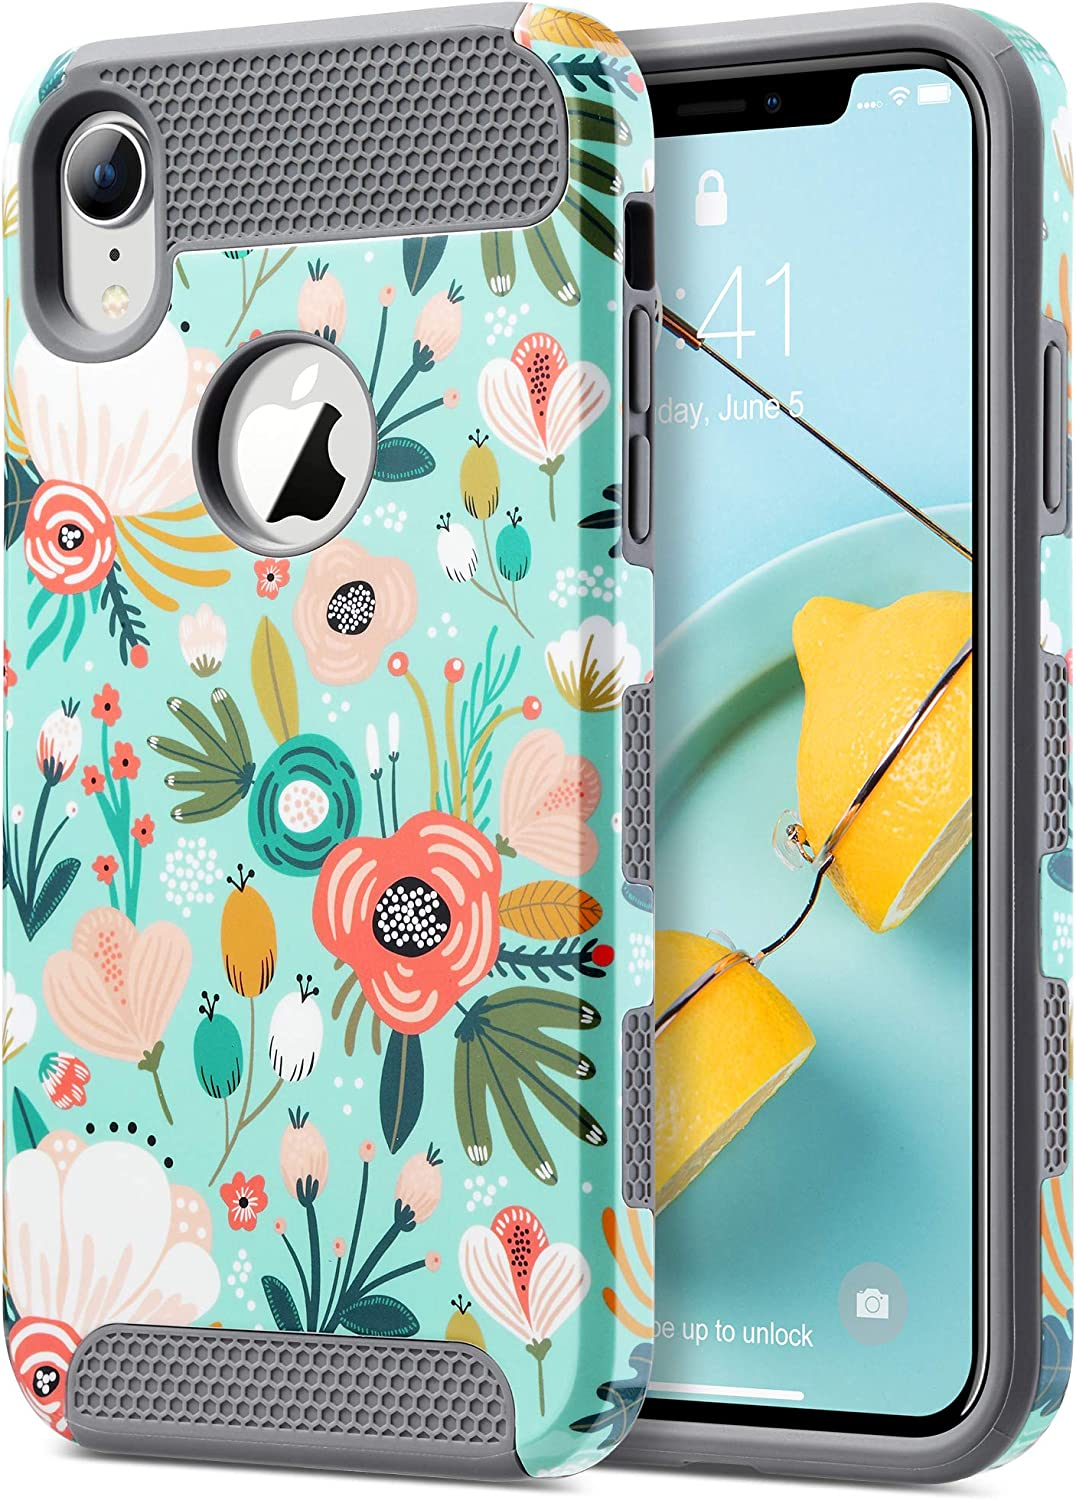 ULAK iPhone XR Case, Slim Hybrid Hard PC Shell Shockproof Phone Case for Women, Anti-Scratch Protective Bumper Cover for iPhone XR 6.1 Inch, Mint Floral